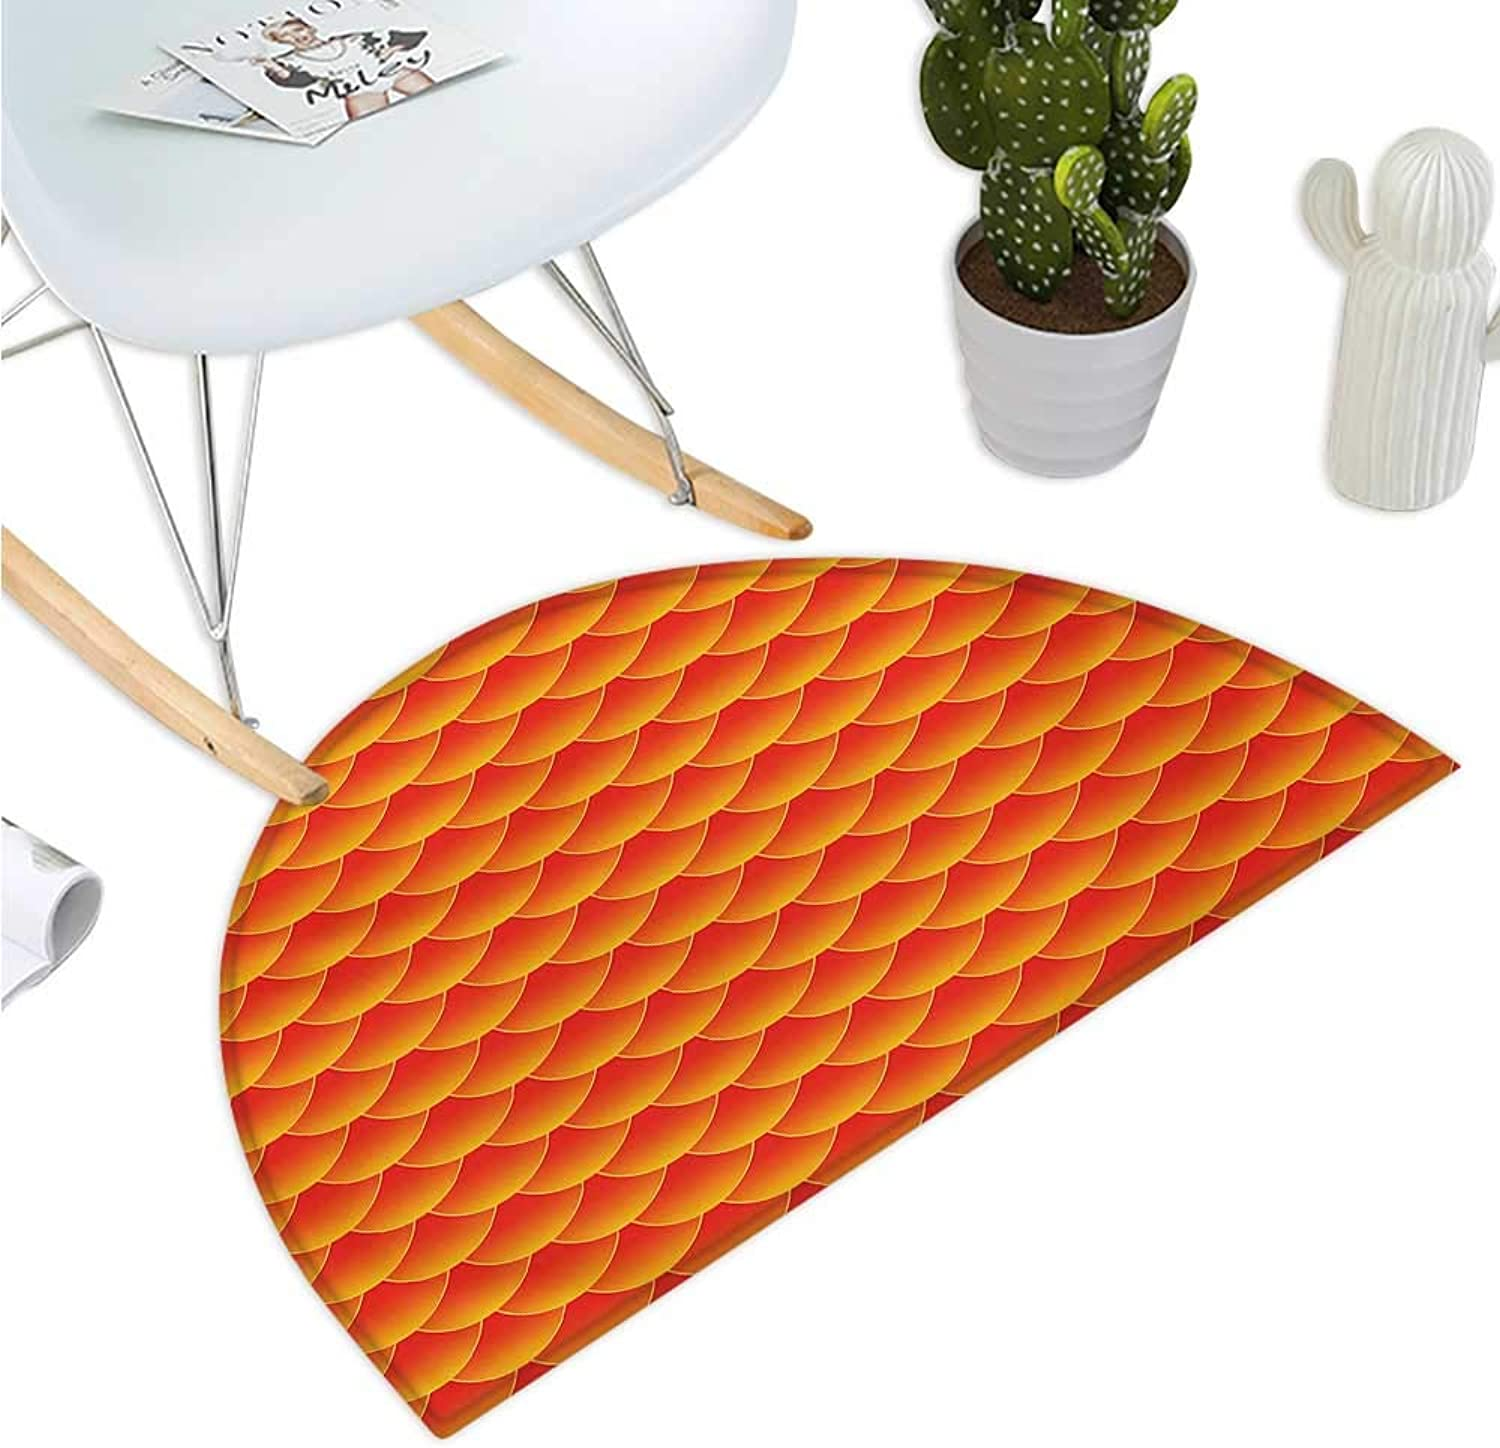 orange Semicircle Doormat goldfish Scales Forming Scallop Shell Random Pattern Fortune Fun Abstract Design Halfmoon doormats H 47.2  xD 70.8  Burnt orange